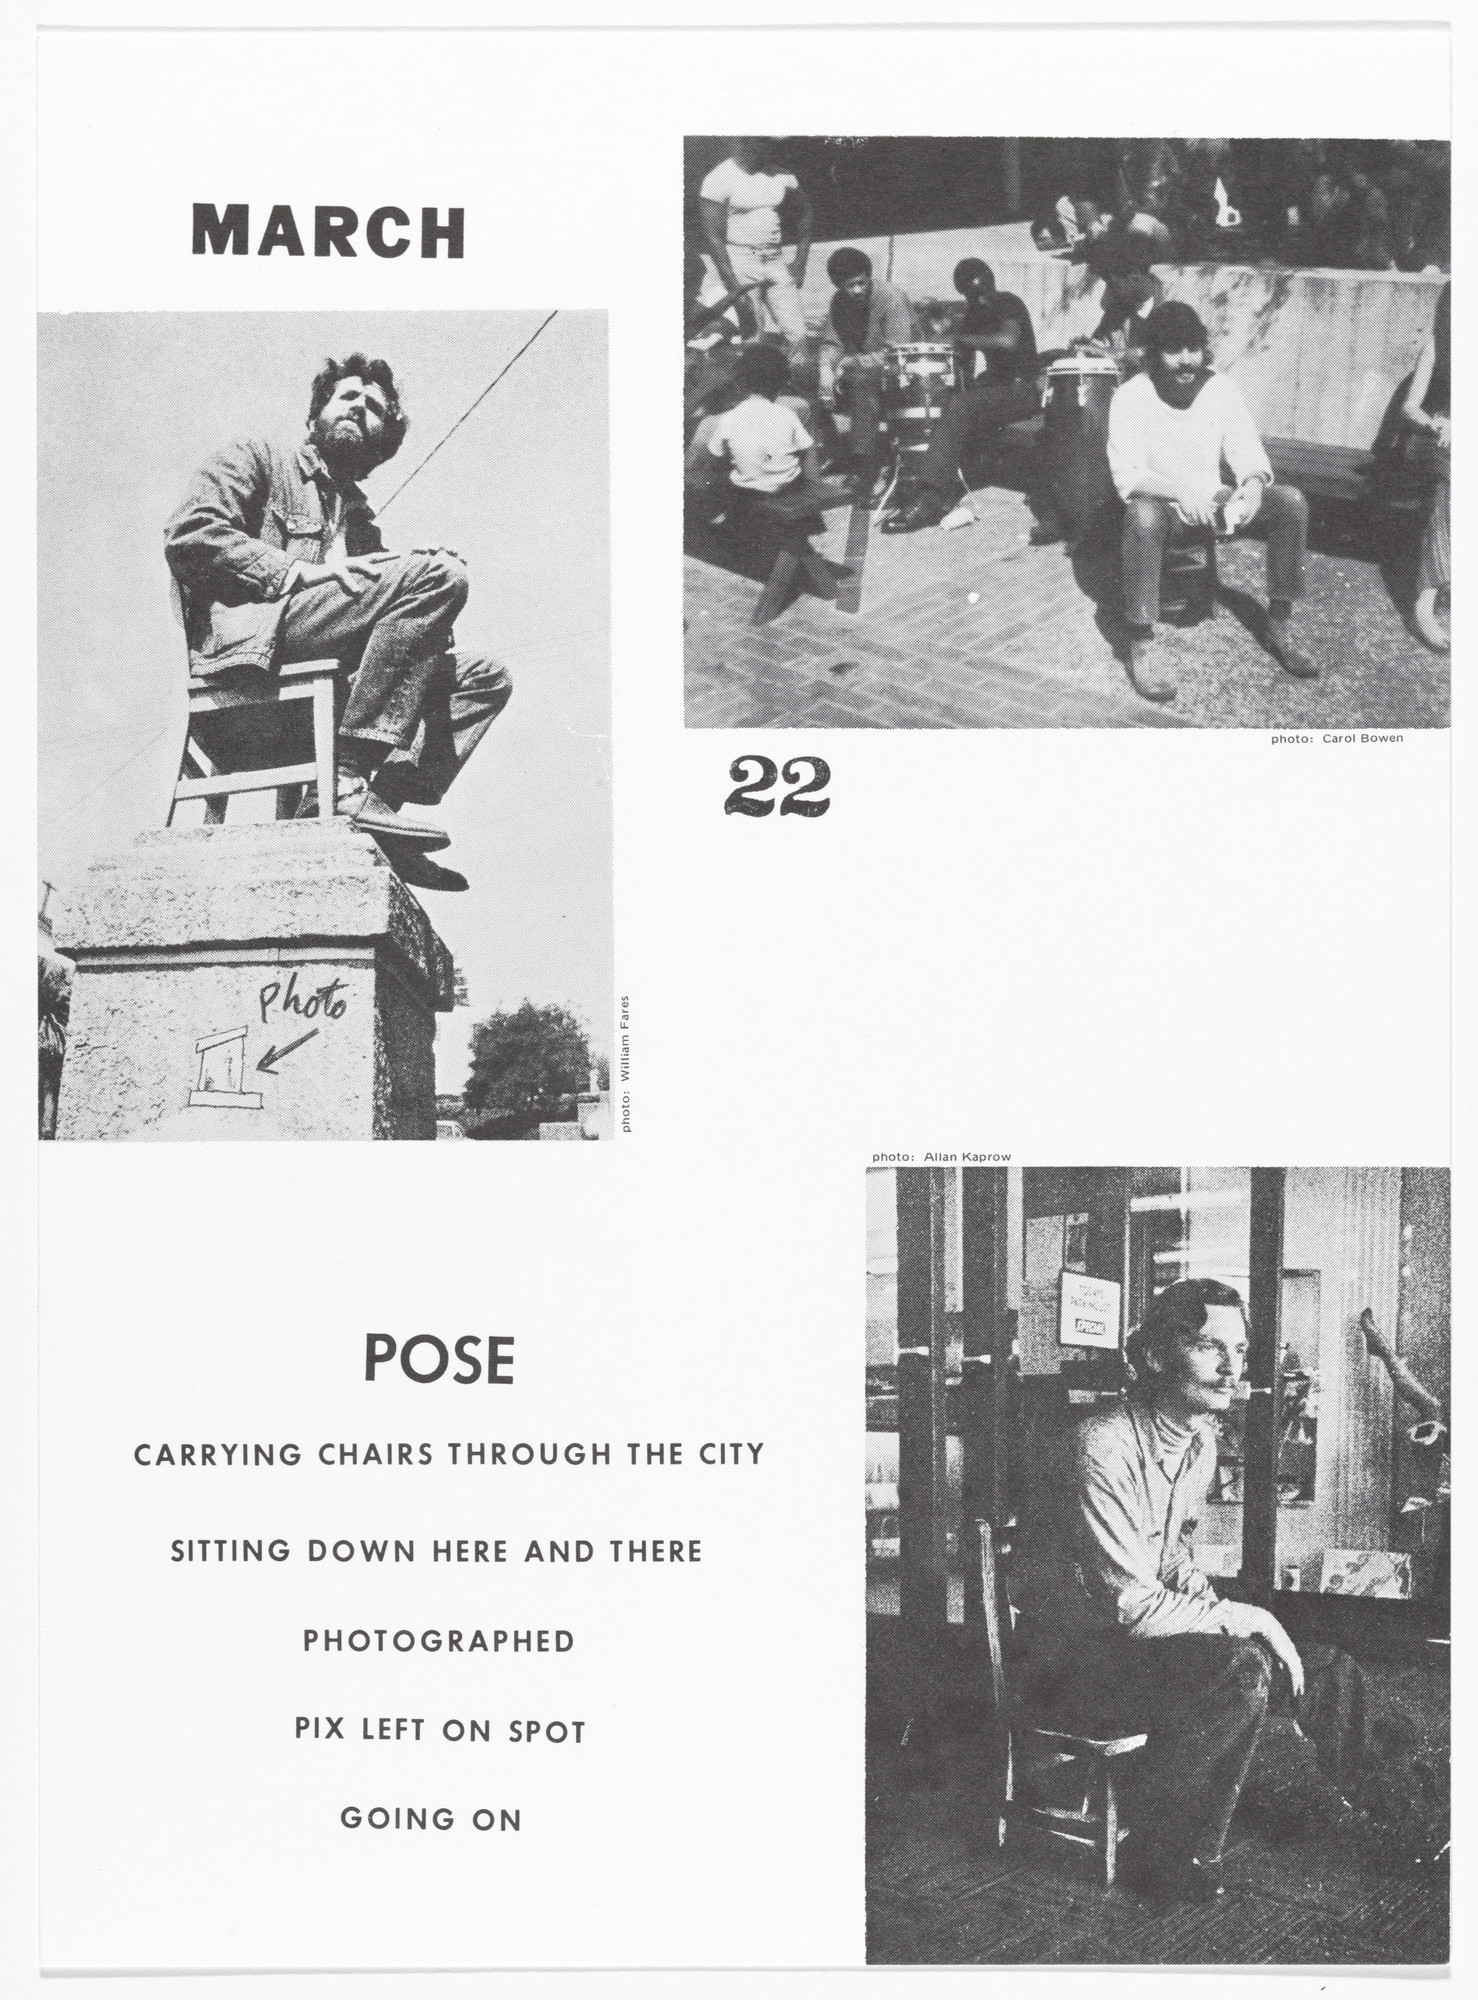 Allan Kaprow. Pose, March 22, 1969 Continued 1970 – from Artists & Photographs. 1969–70, published 1970